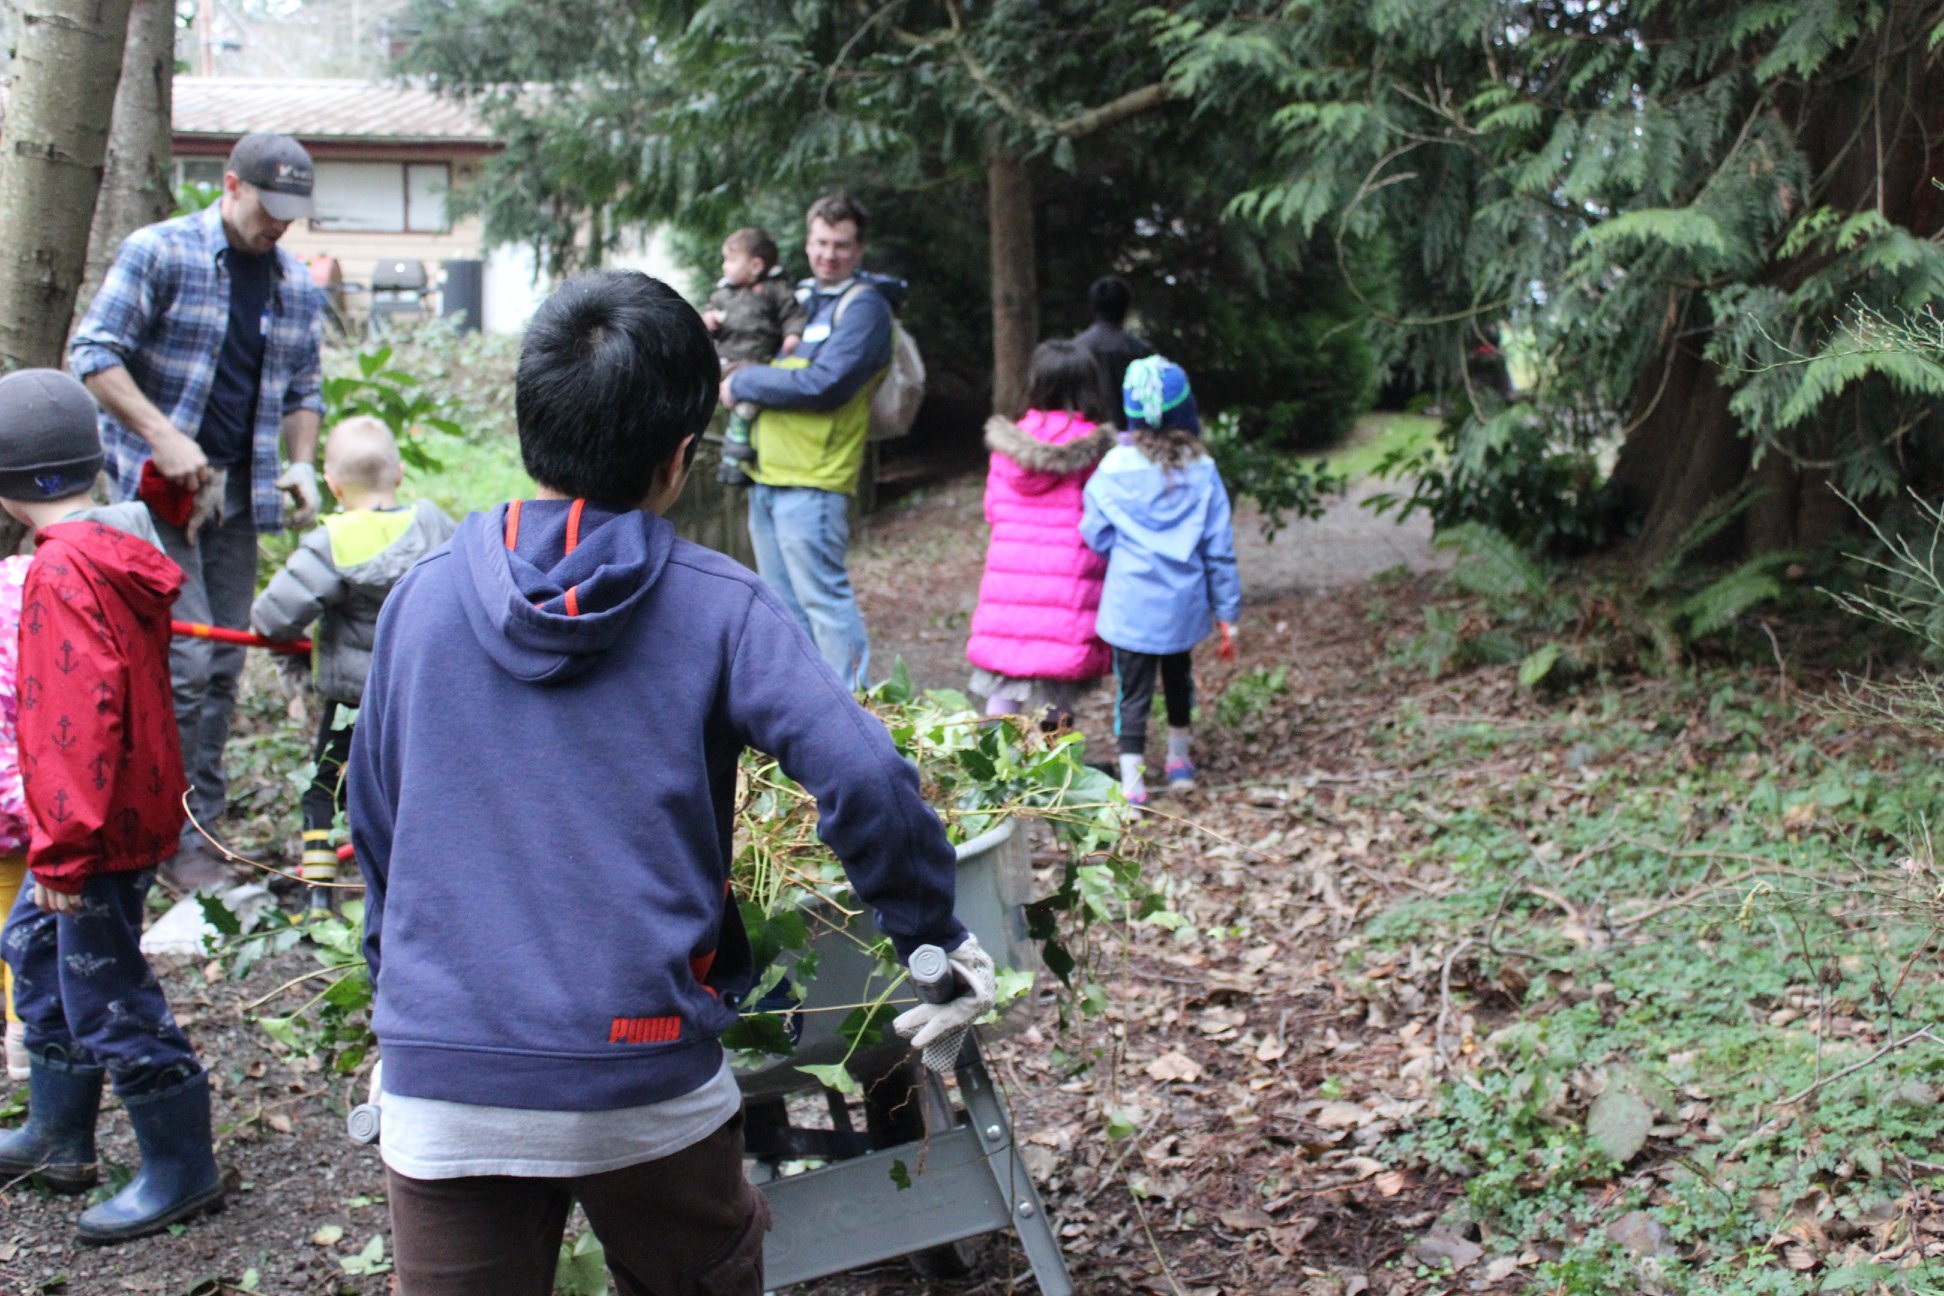 Removing invasive plants at local park